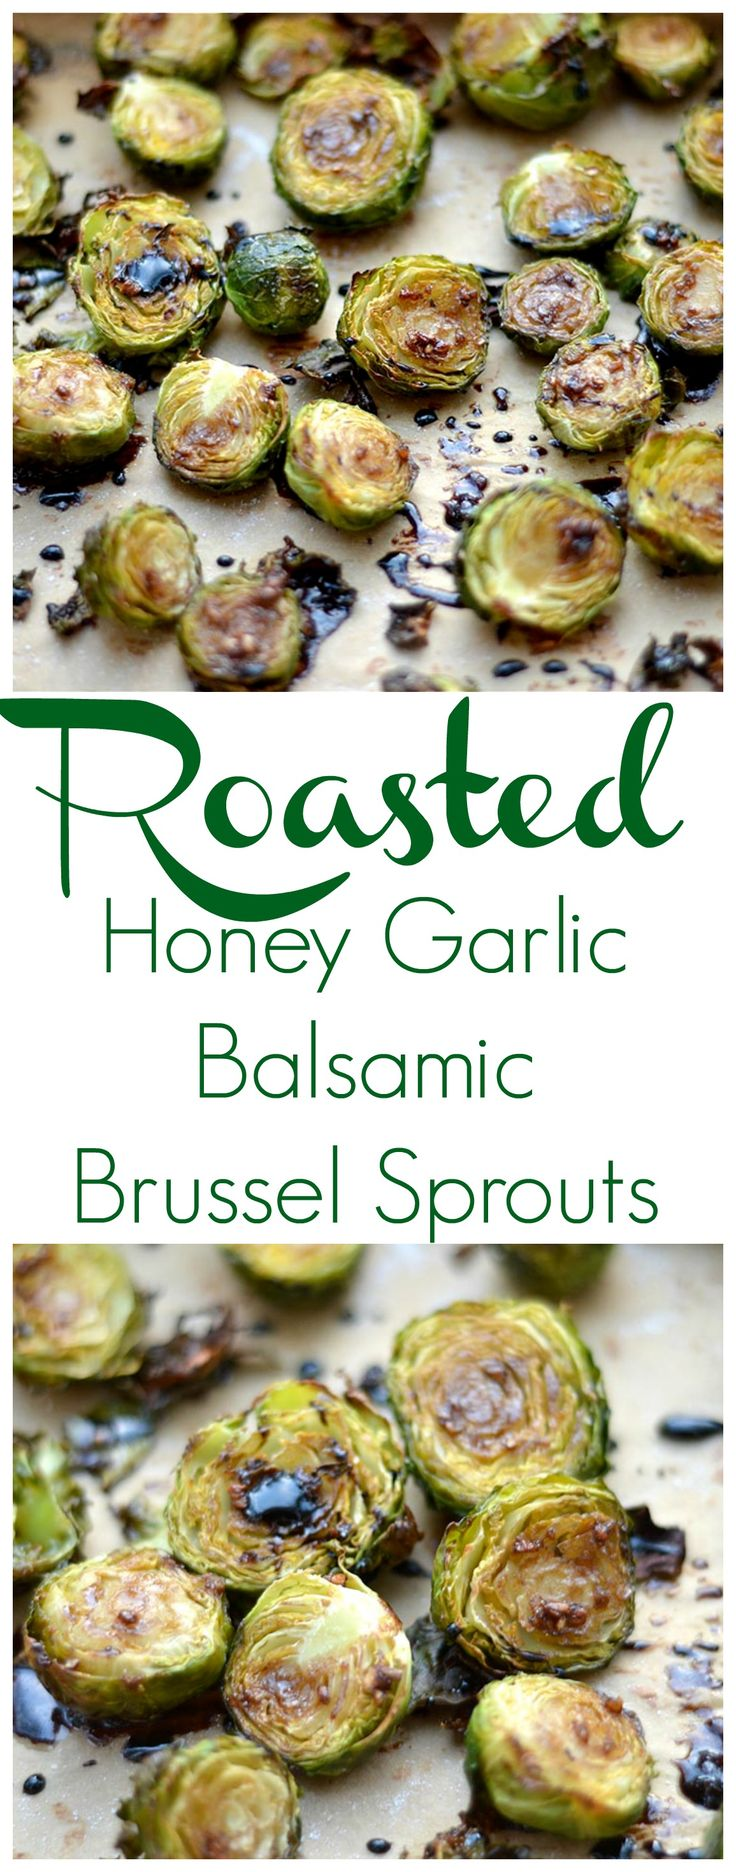 The tastiest and most simple way to enjoy your Brussel Sprouts!